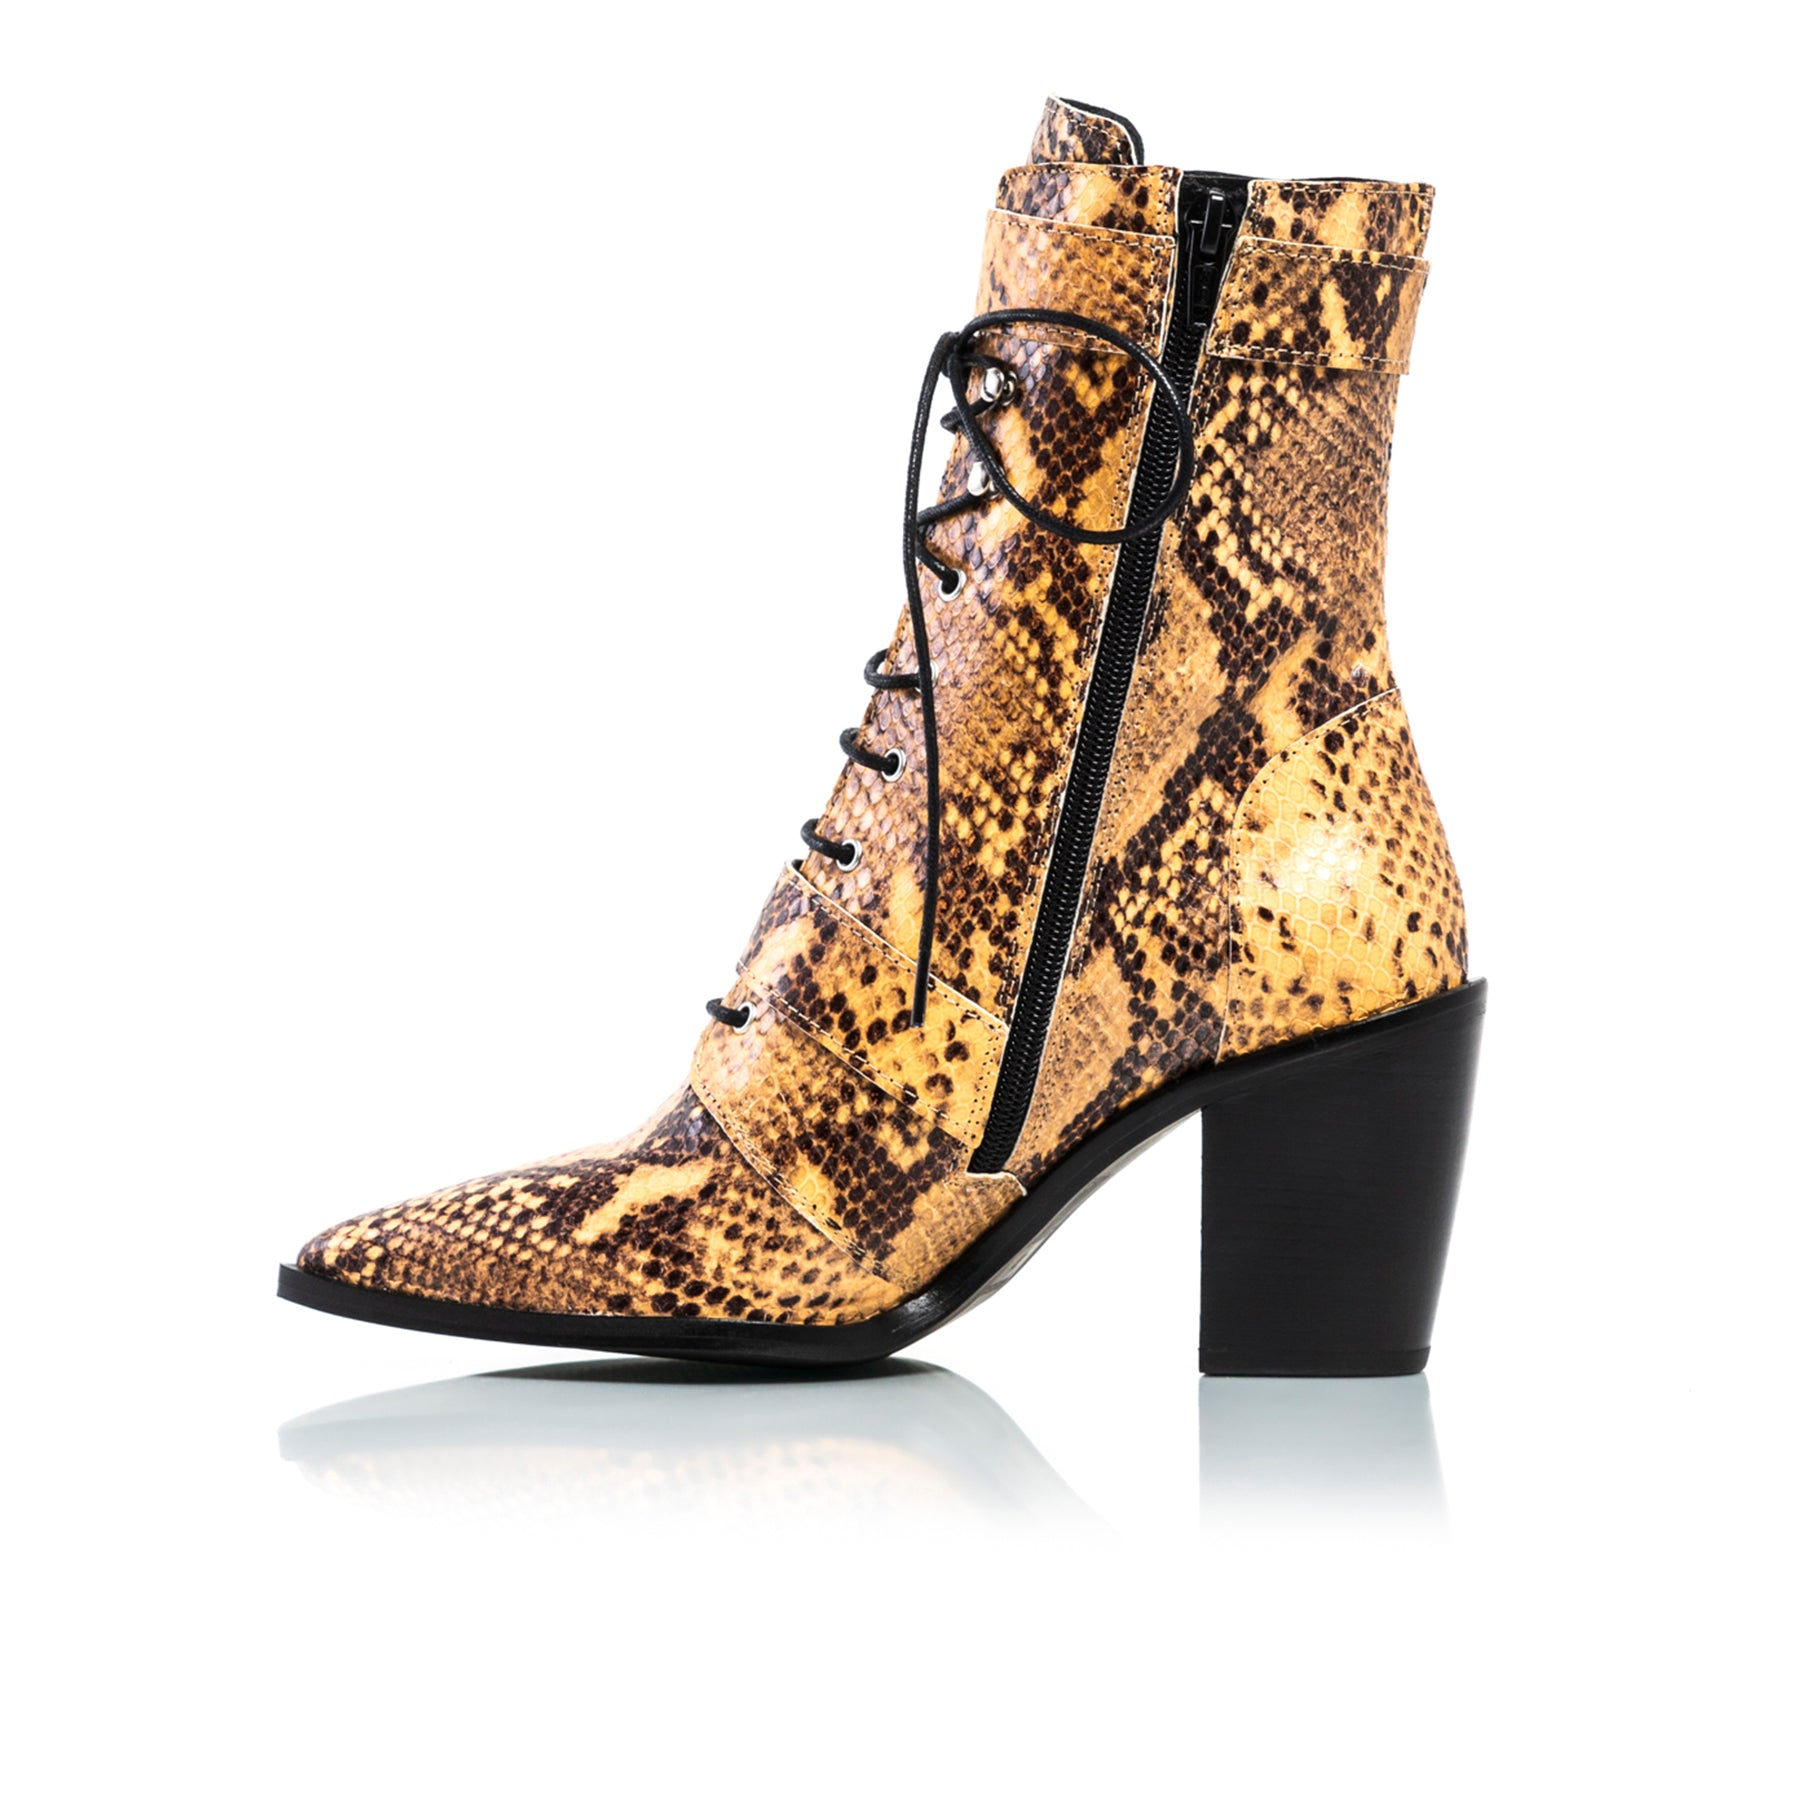 Mikaela Mustard Snake Ankle Boots